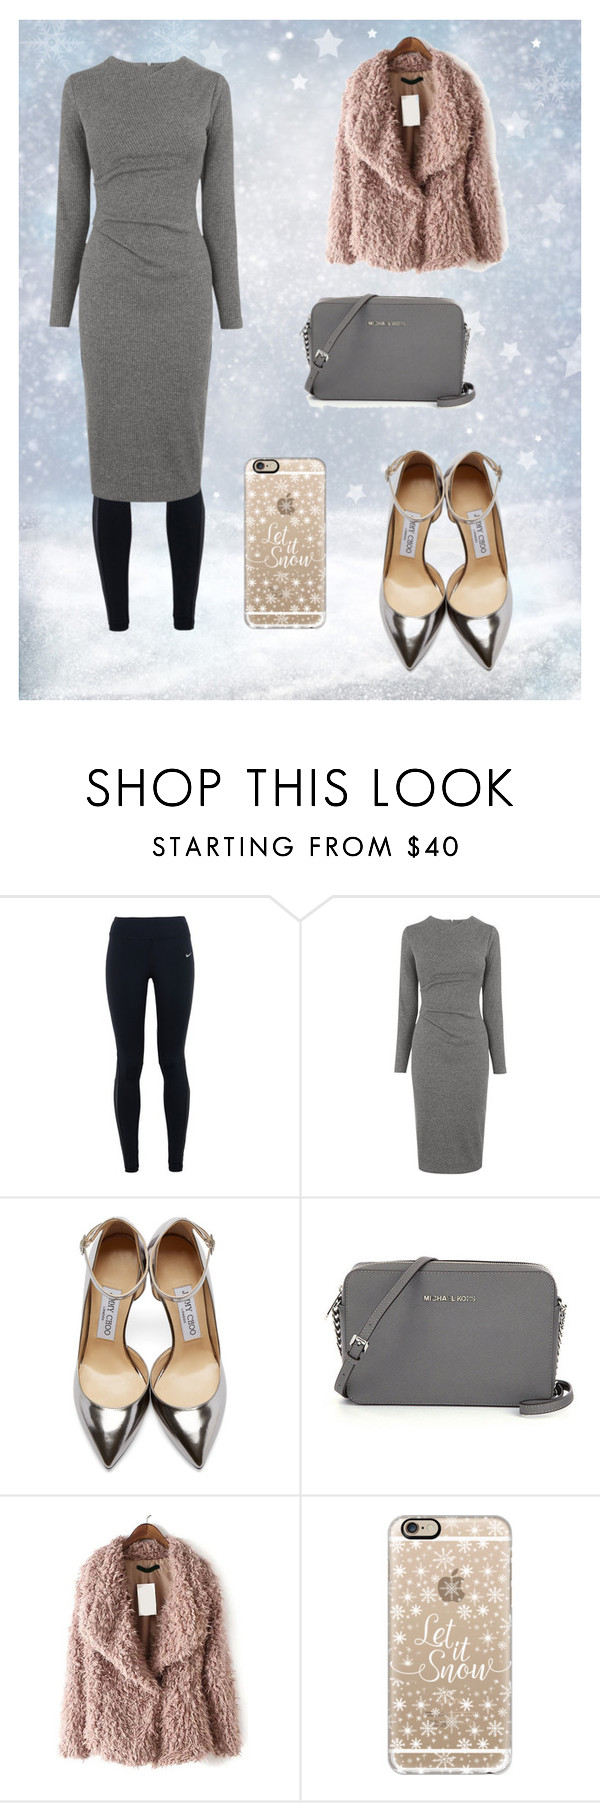 """""""Daily winter"""" by maemaed ❤ liked on Polyvore featuring beauty, NIKE, Whistles, Jimmy Choo and Casetify"""